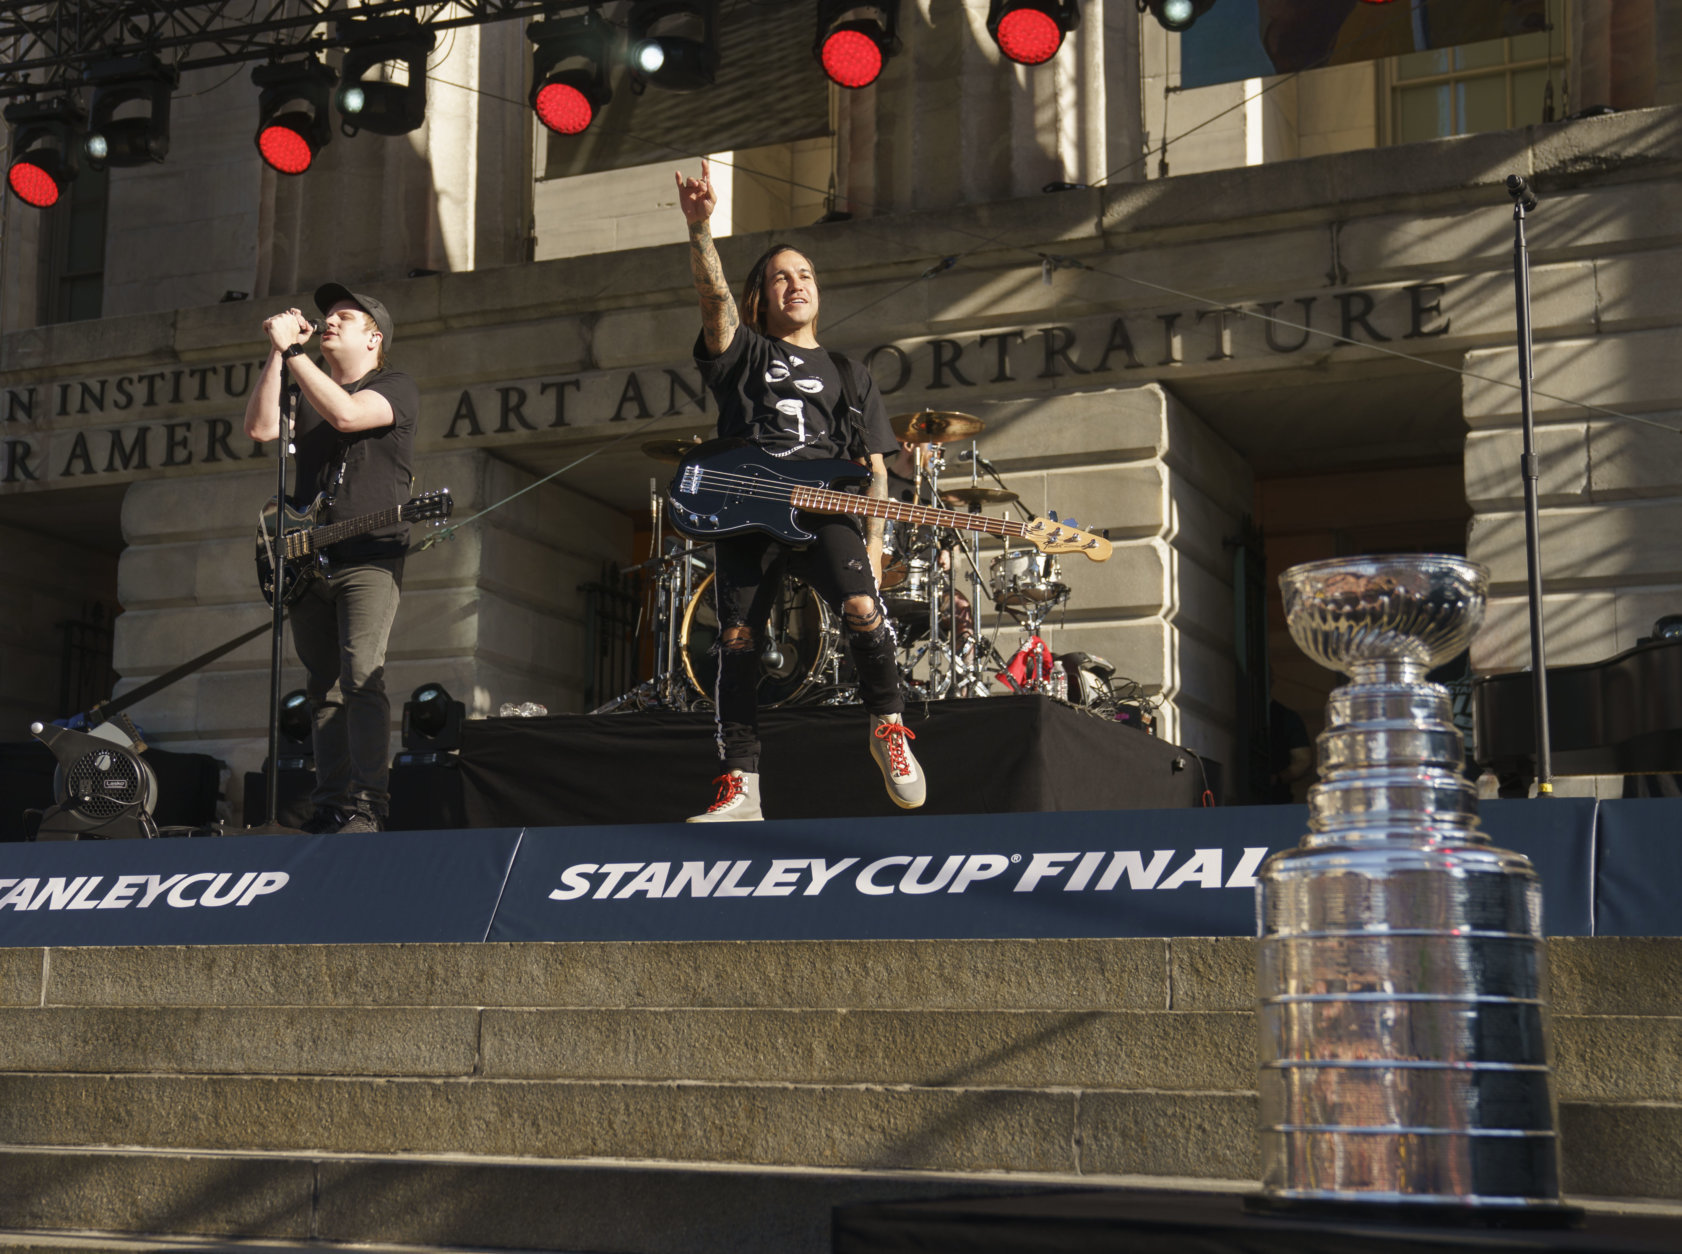 Fall Out Boy performs before the start of Game 4 of the NHL hockey Stanley Cup Final between the Washington Capitals and the Vegas Golden Knights, Monday, June 4, 2018, in Washington. The Stanley Cup is displayed lower right. (AP Photo/Carolyn Kaster)